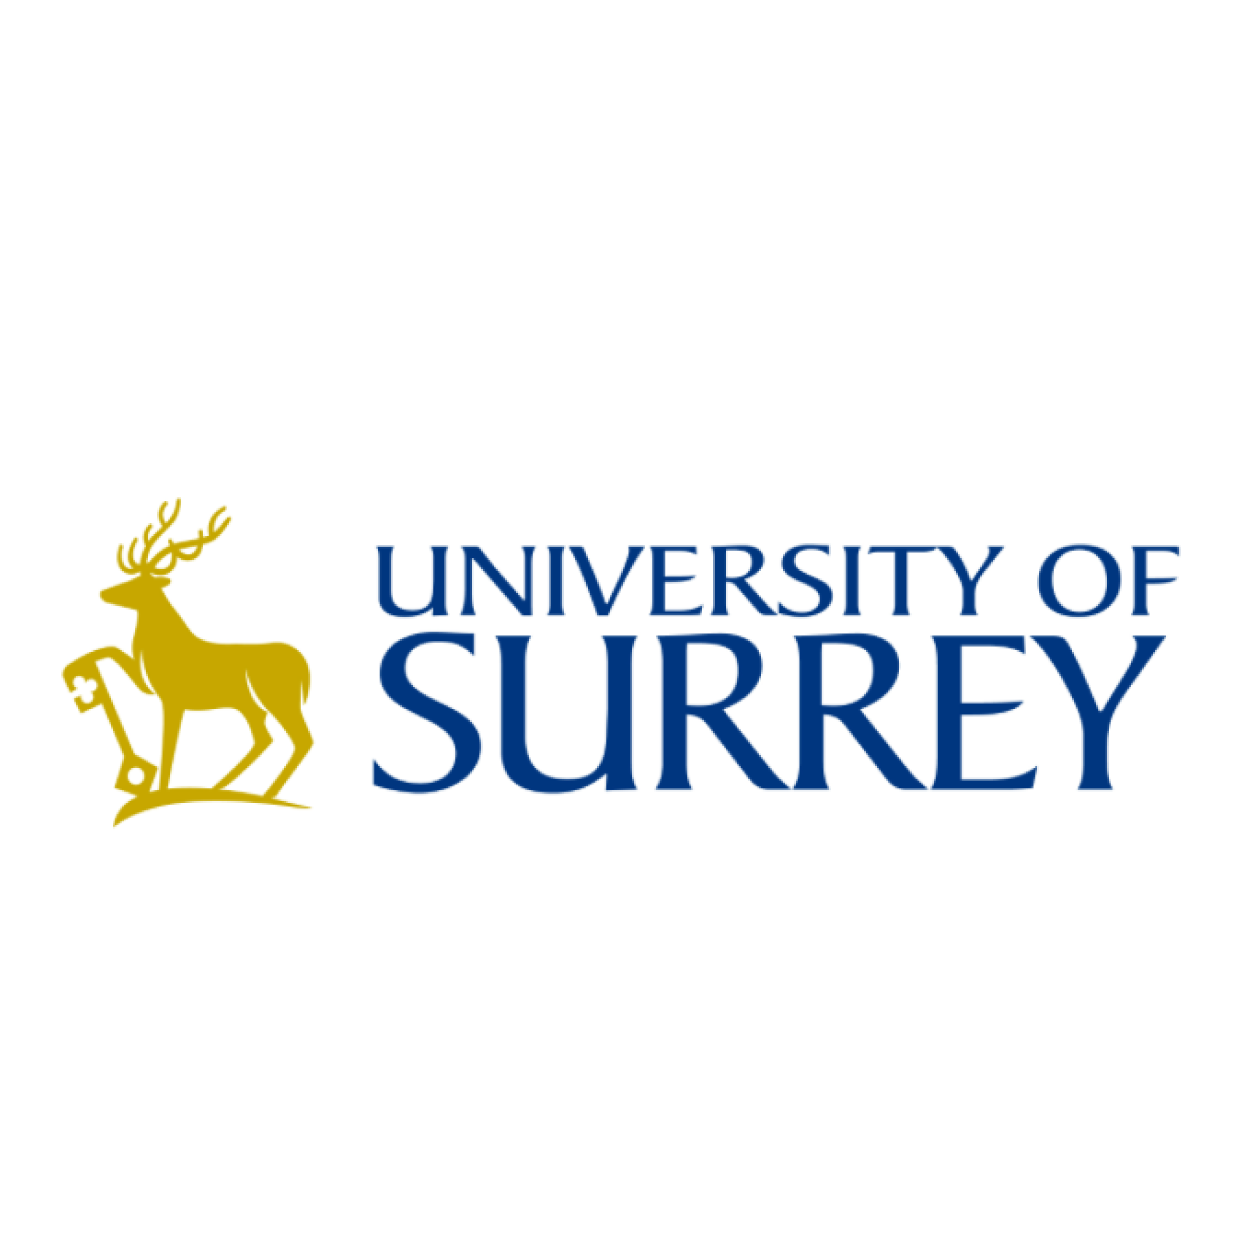 University of Surrey.png